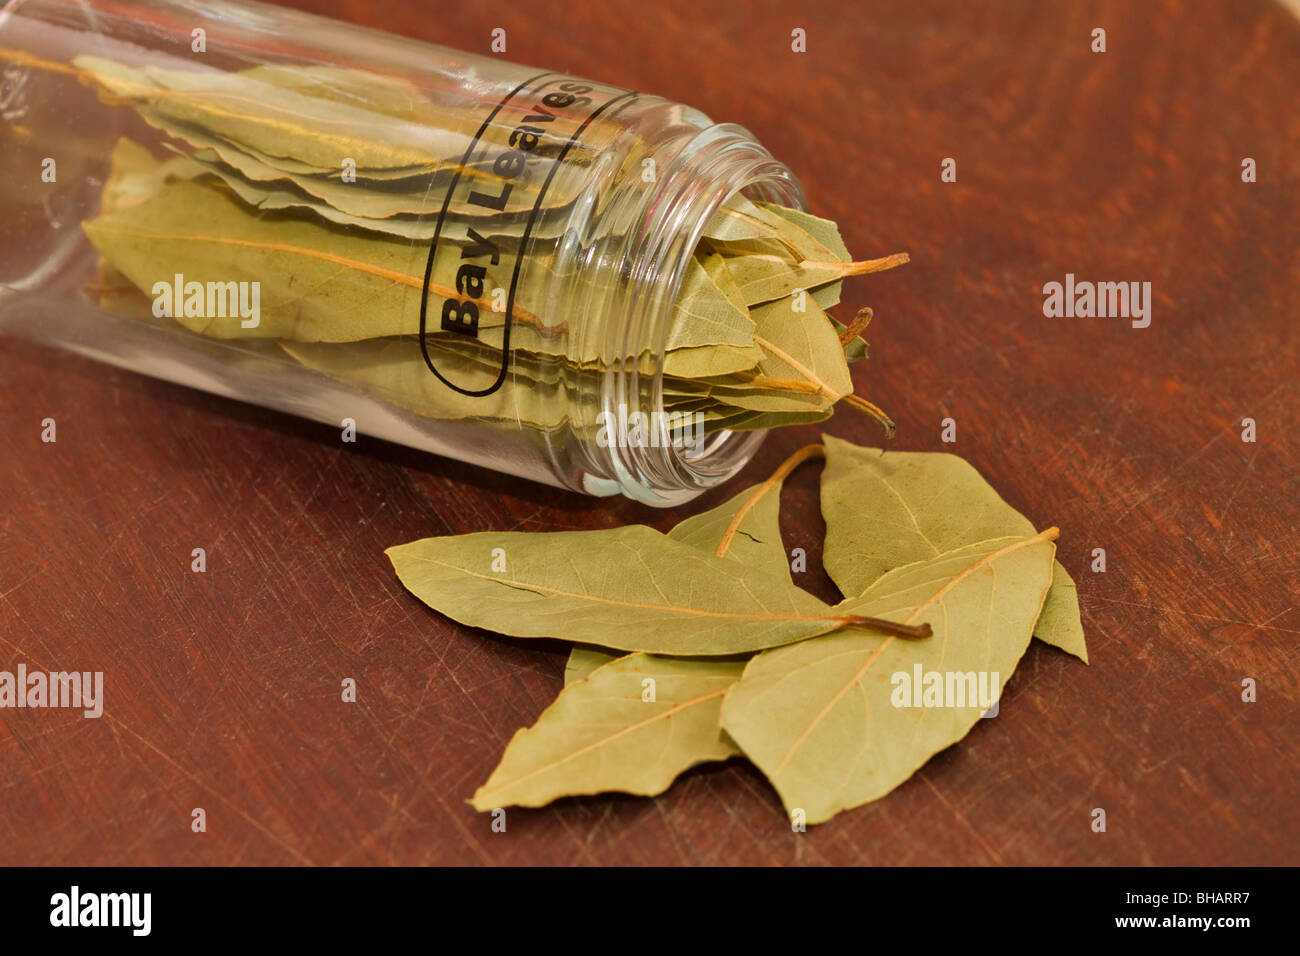 Dried bay leaves on a cutting board - Stock Image